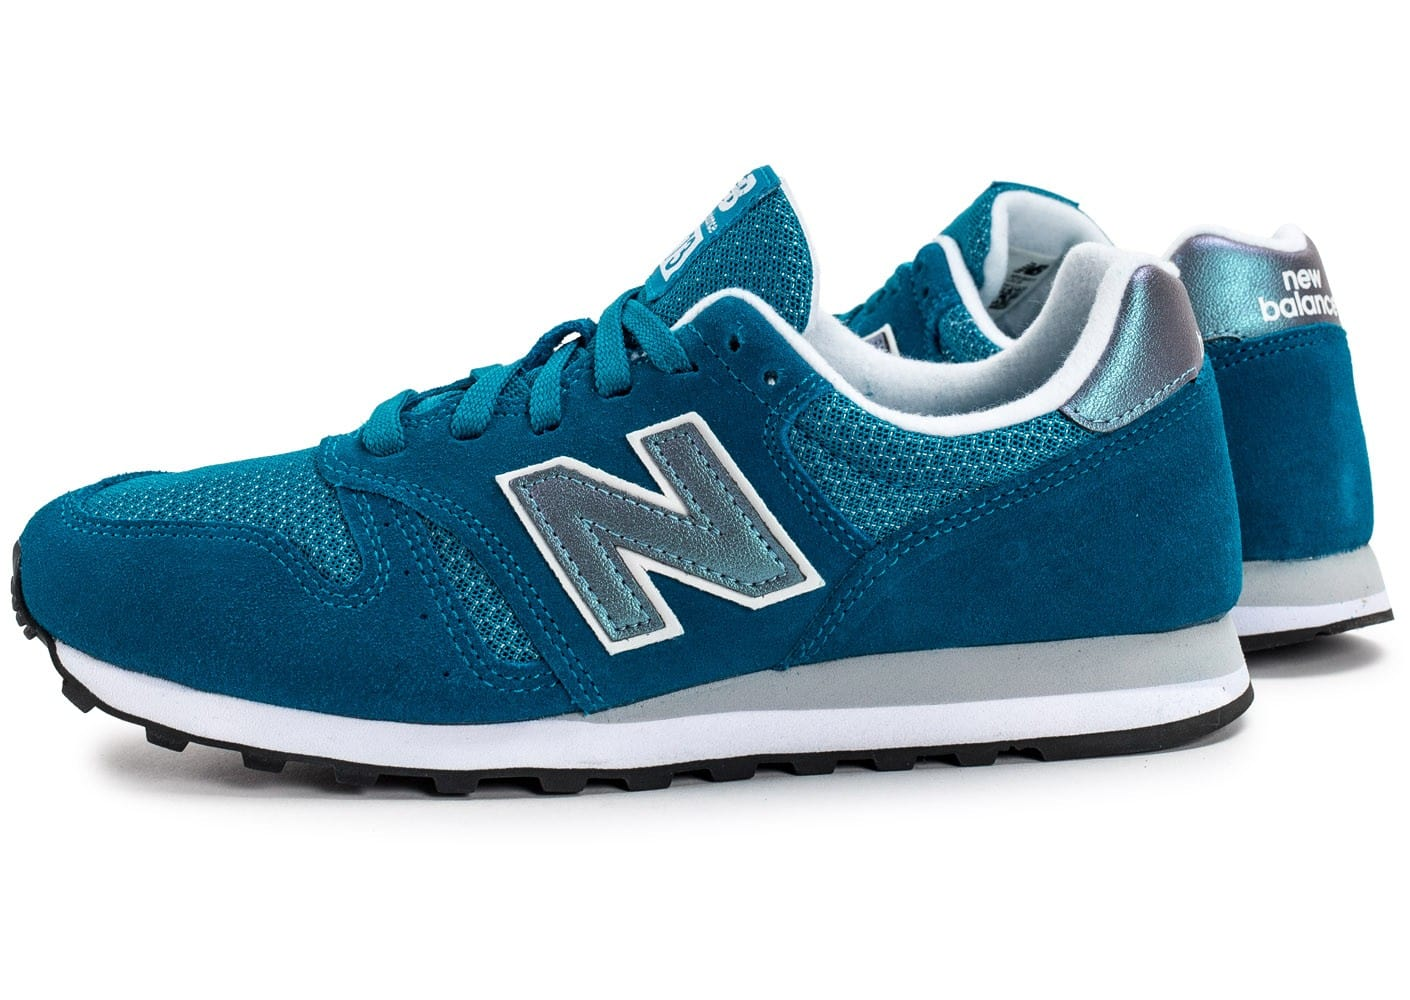 new balance wl373 gi suede turquoise chaussures femme chausport. Black Bedroom Furniture Sets. Home Design Ideas